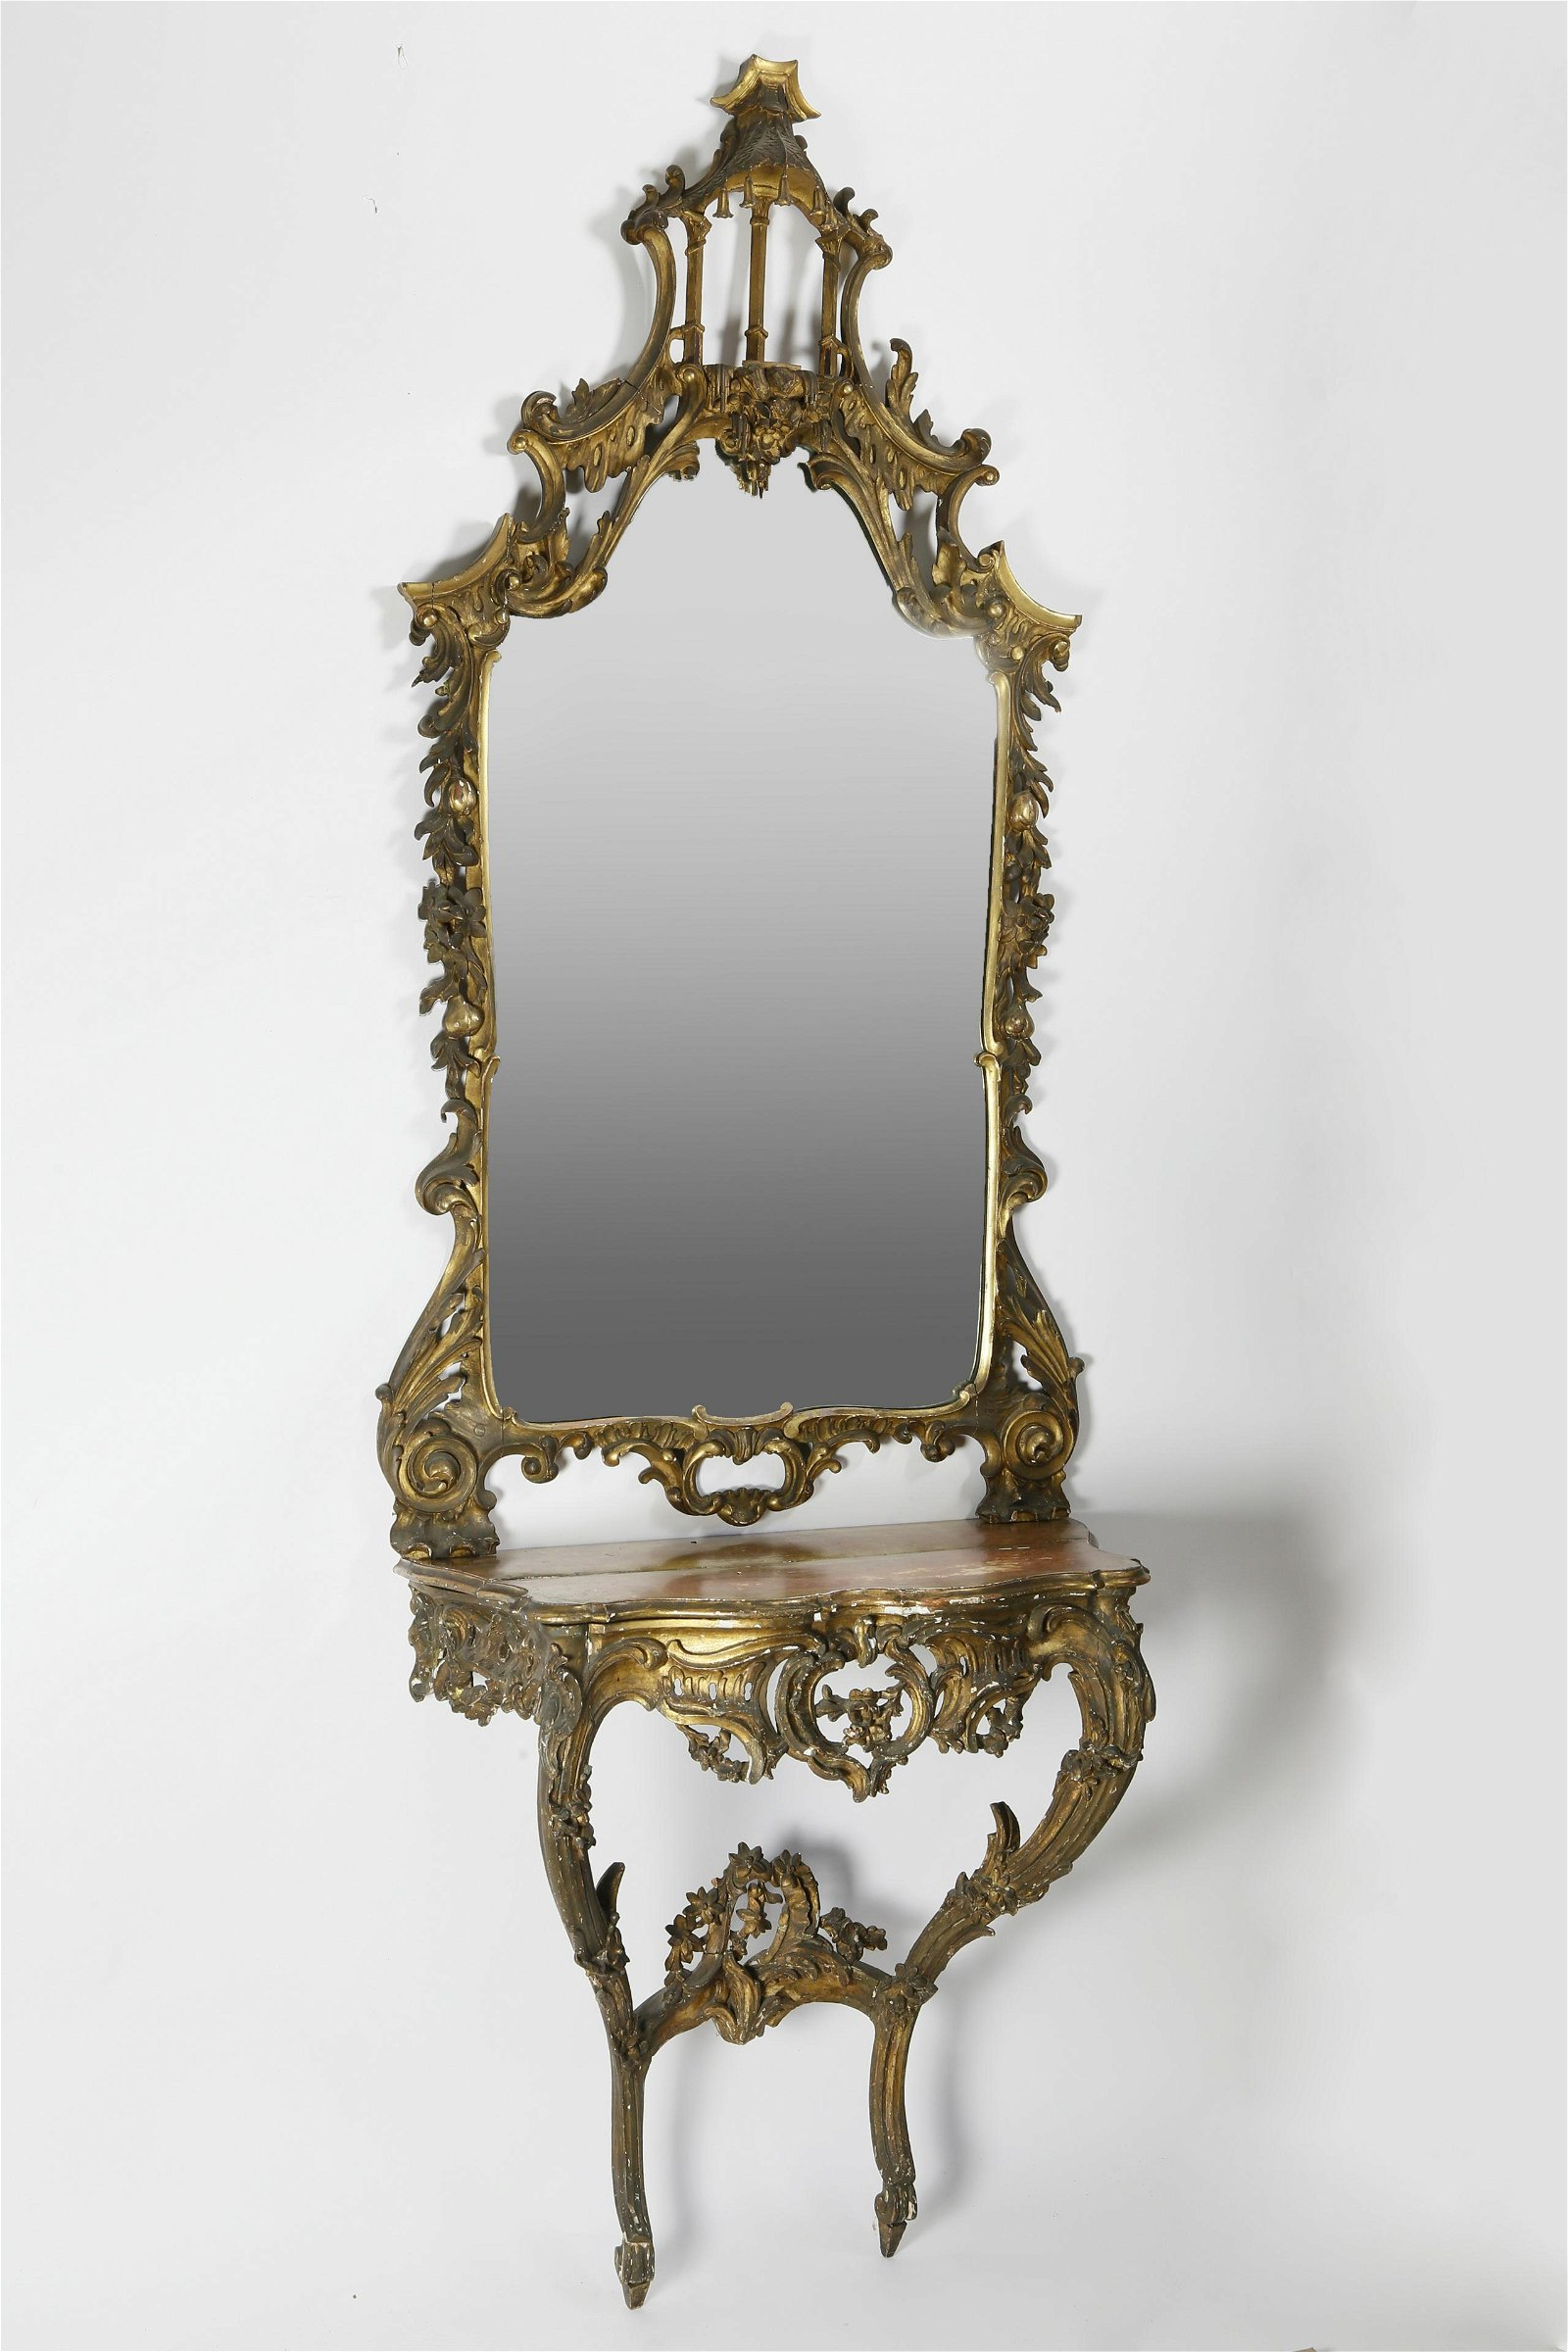 Louis XV Giltwood Mirror and Serpentine Console, 18th